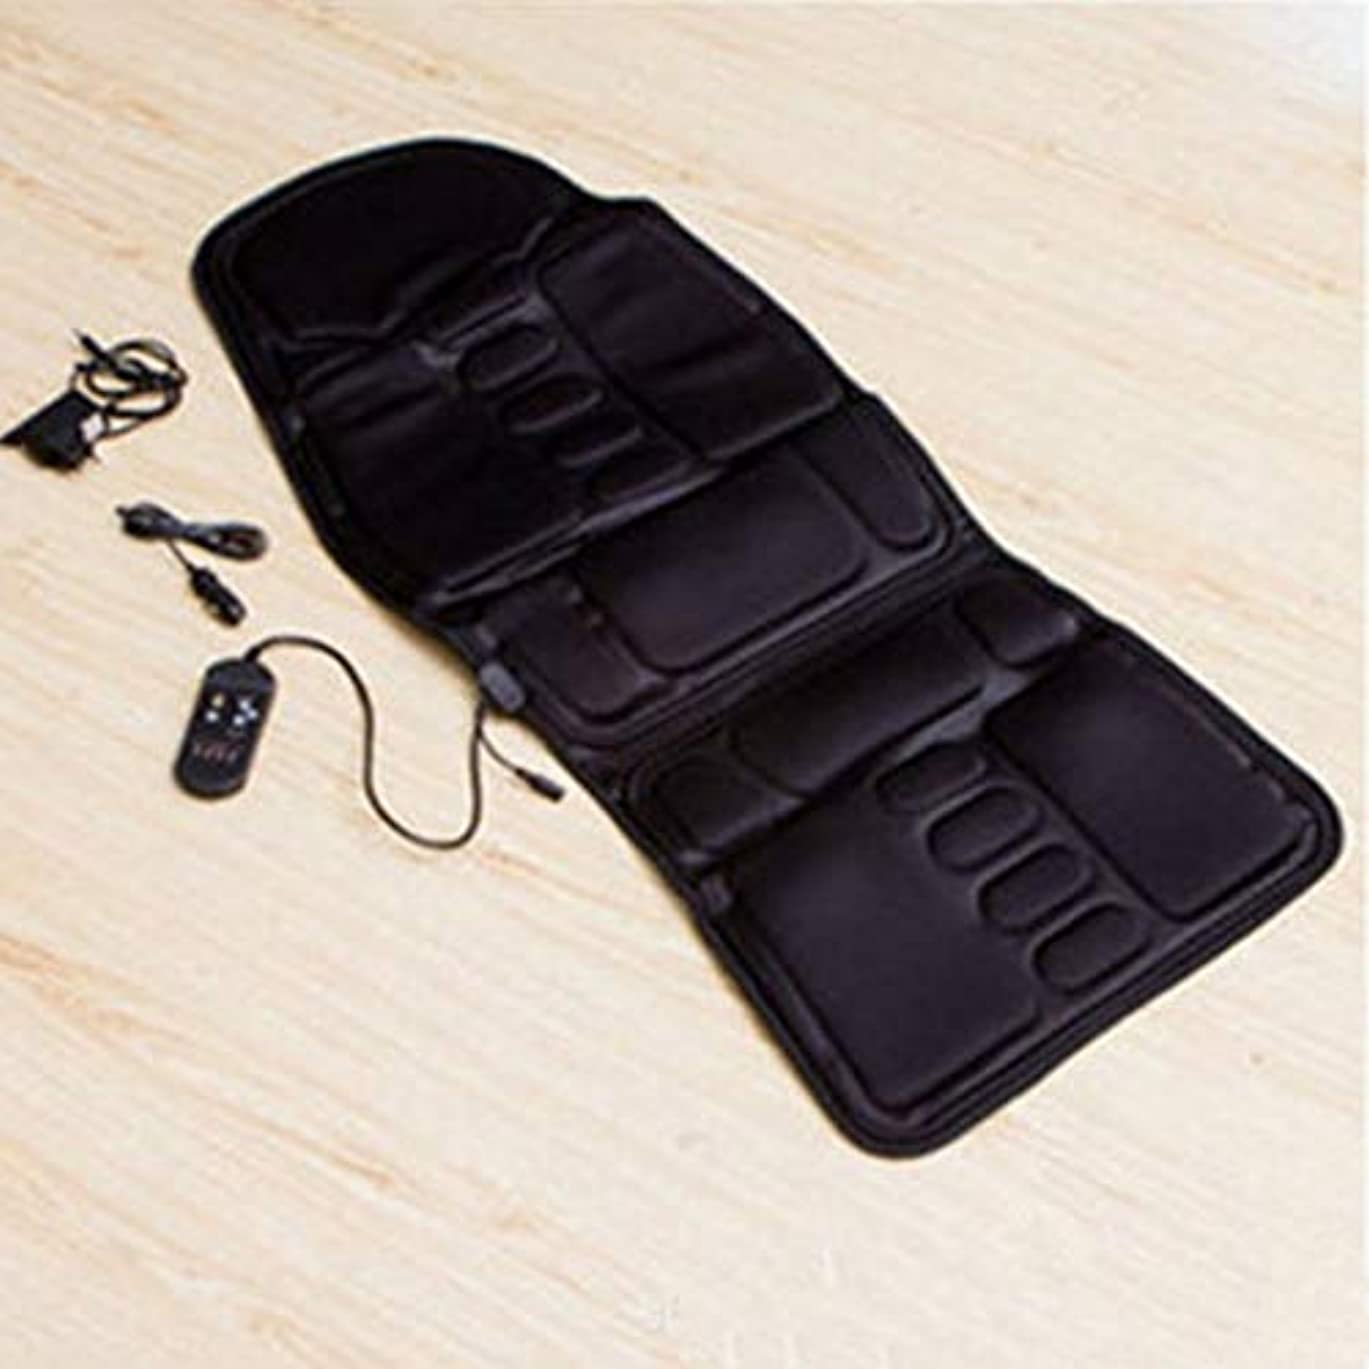 ジョットディボンドン誰突然のCar Chair Home Seat Heat Cushion Back Neck Waist Body Electric Multifunctional Chair Massage Pad Back Massager